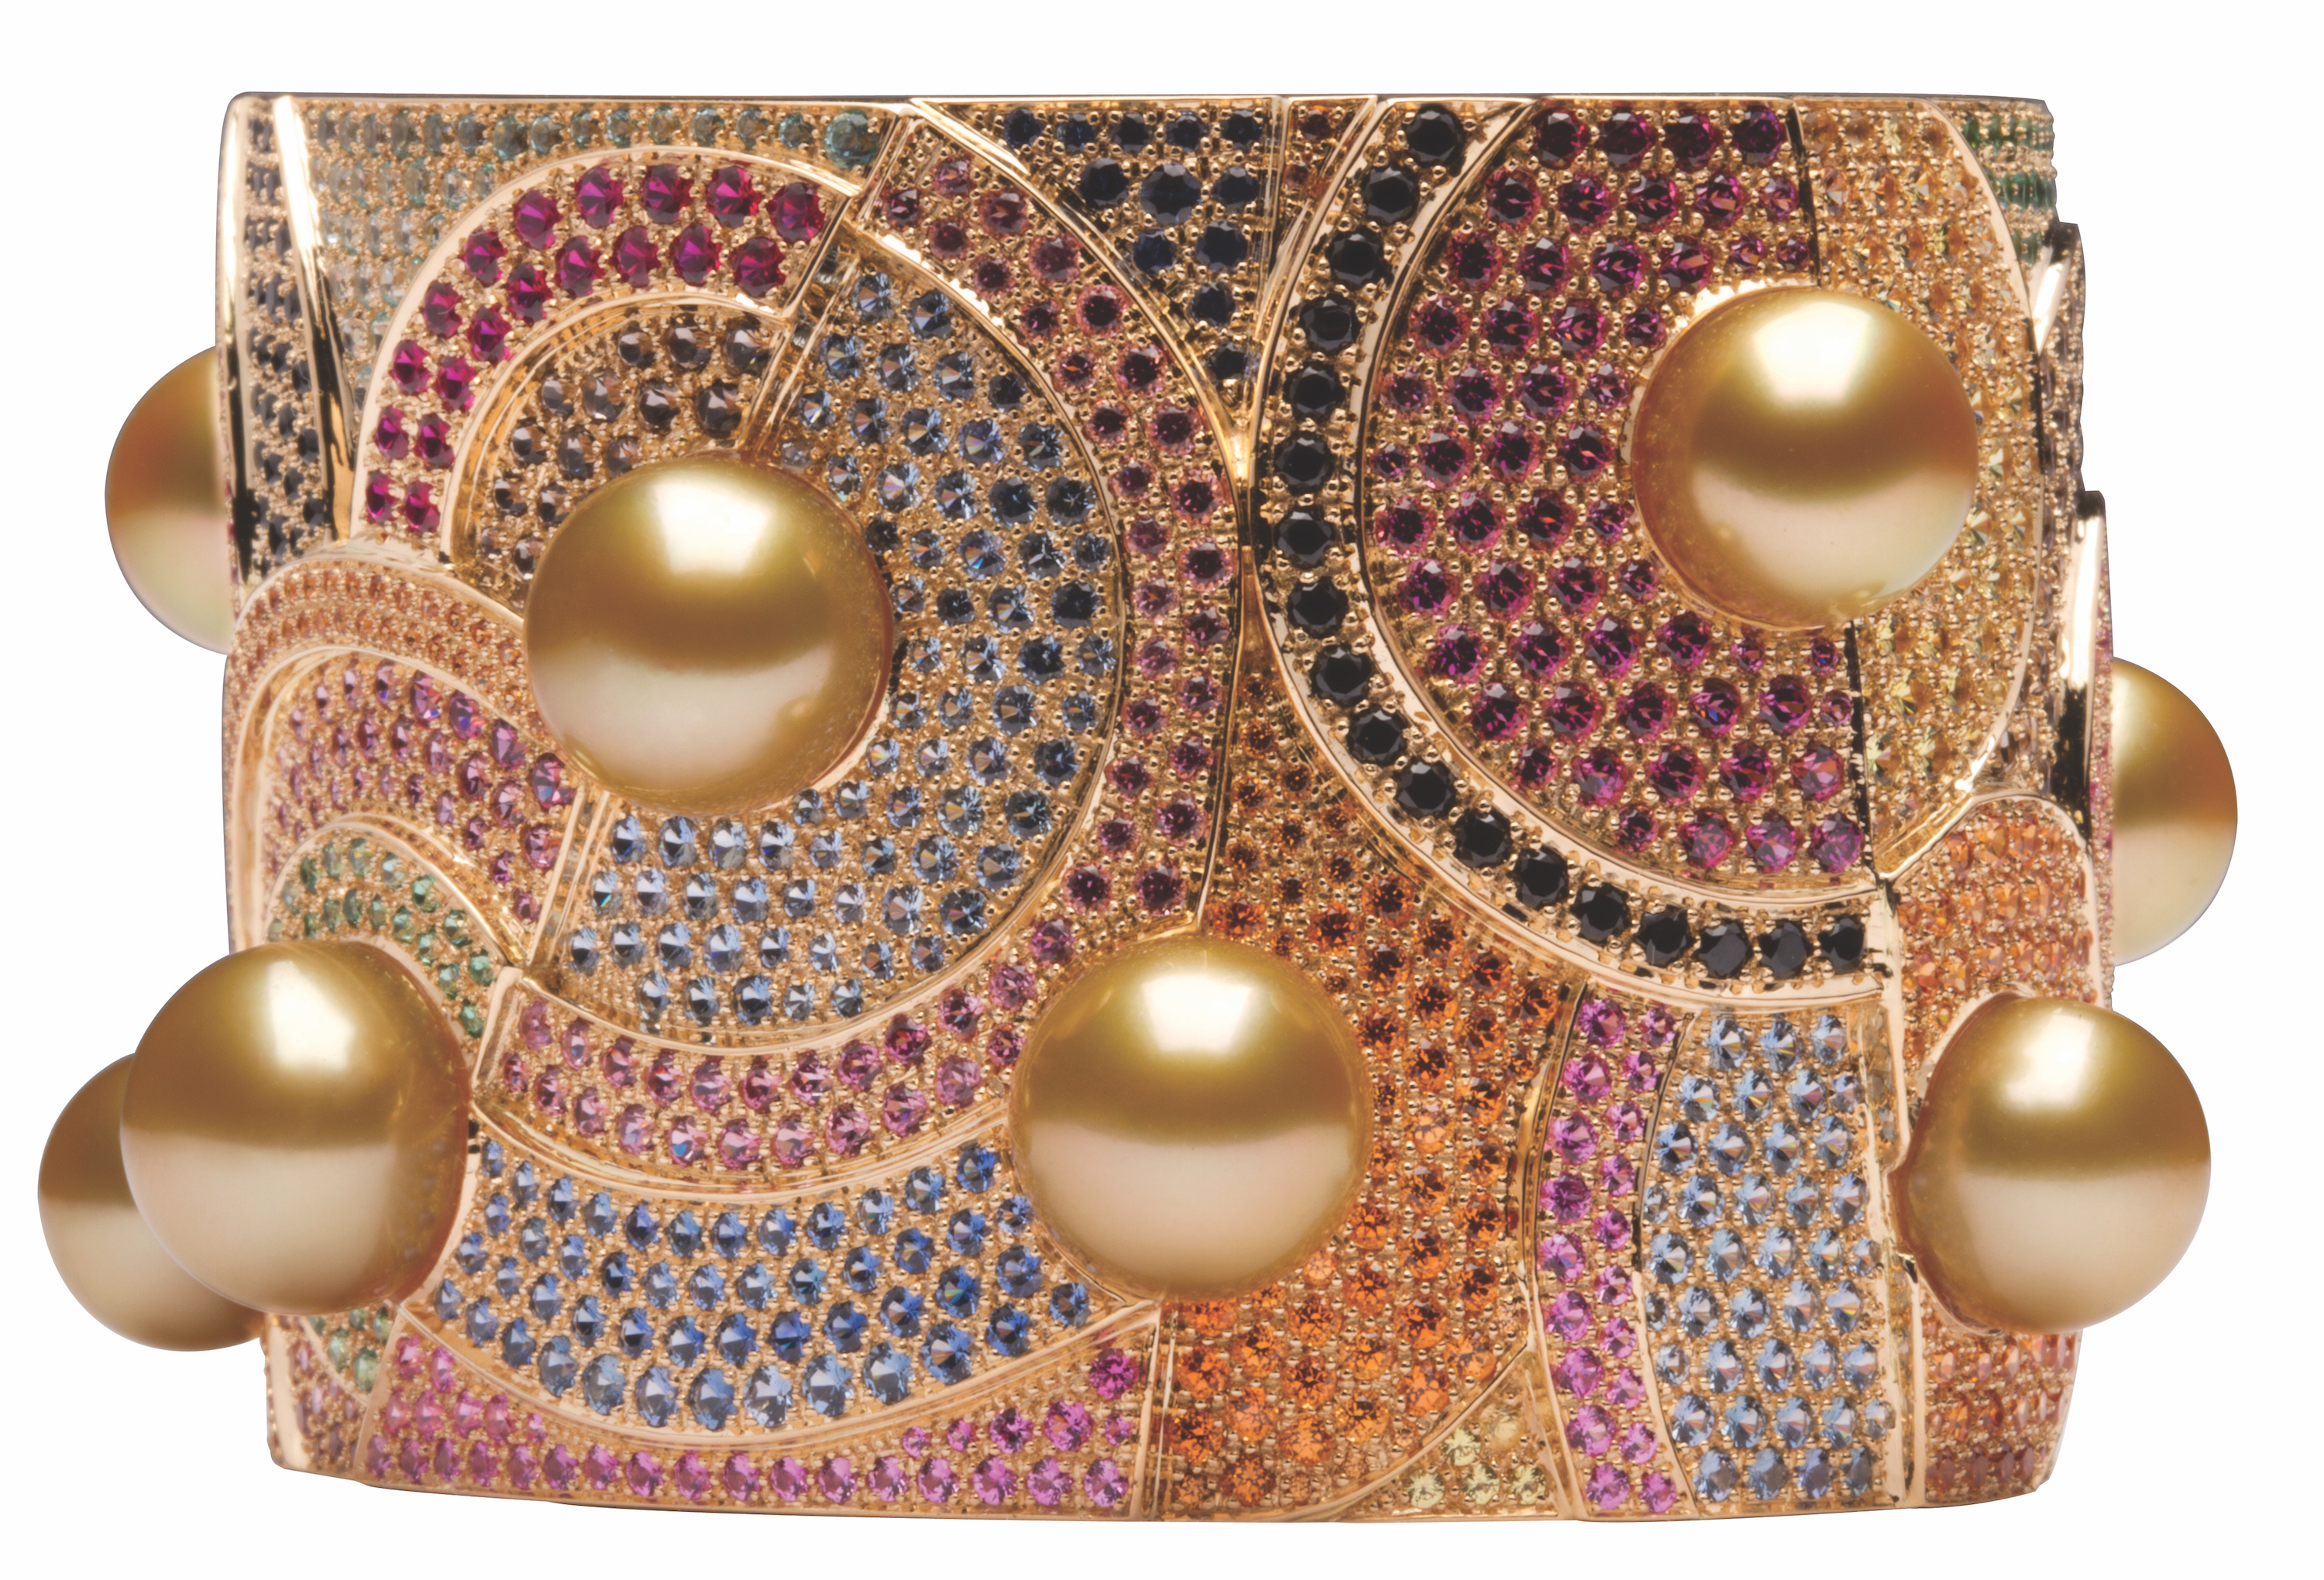 Jewelmer colored cuff bracelet | JCK On Your Market